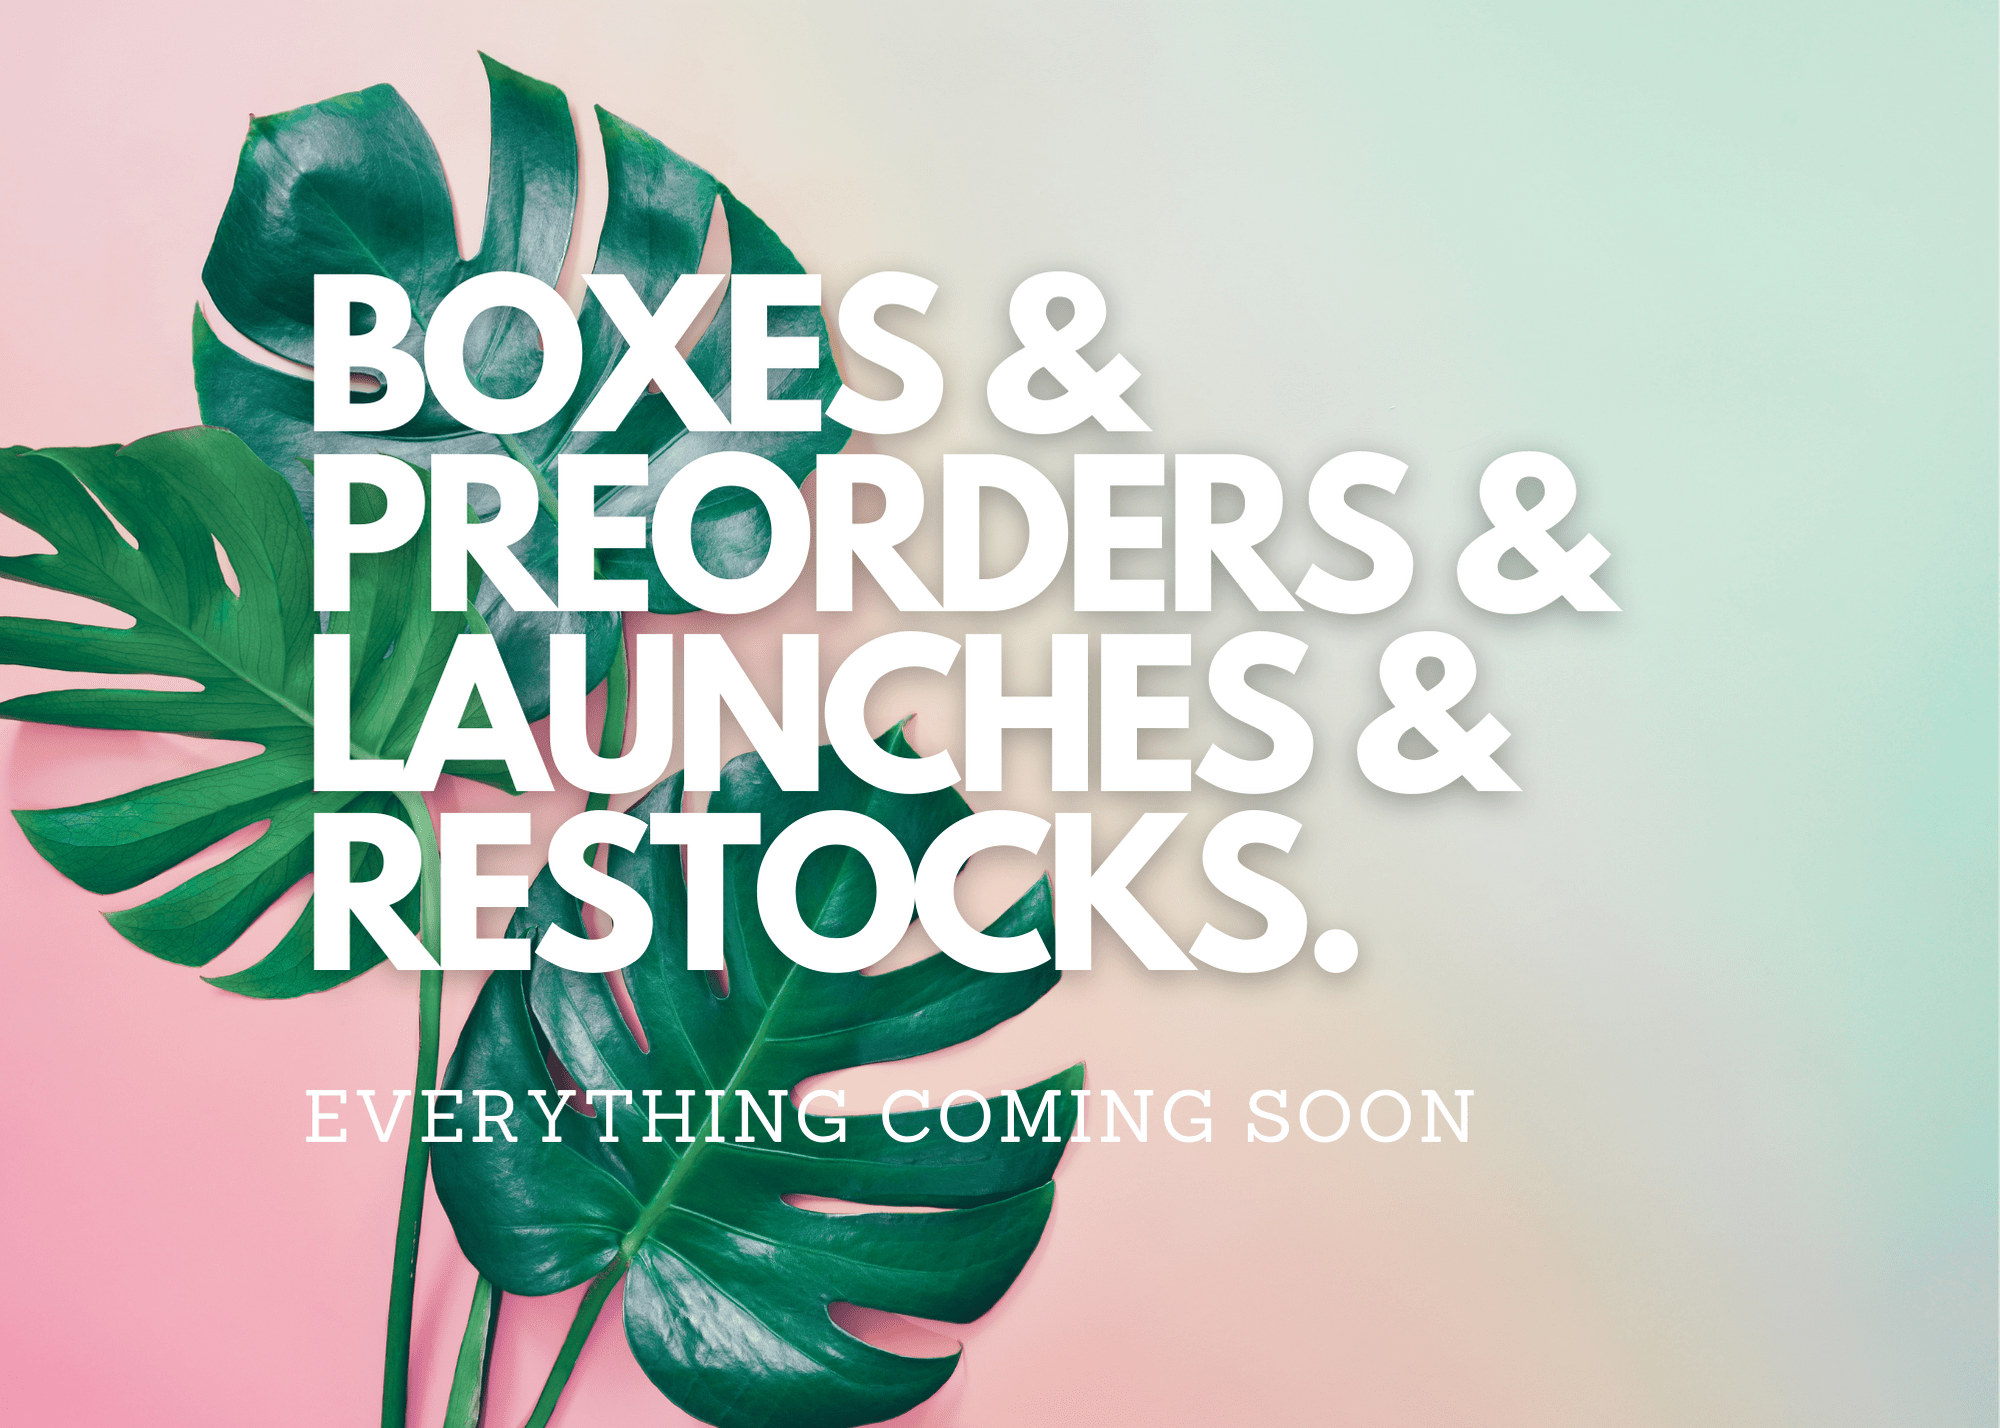 April 2021 – Everything Coming Soon